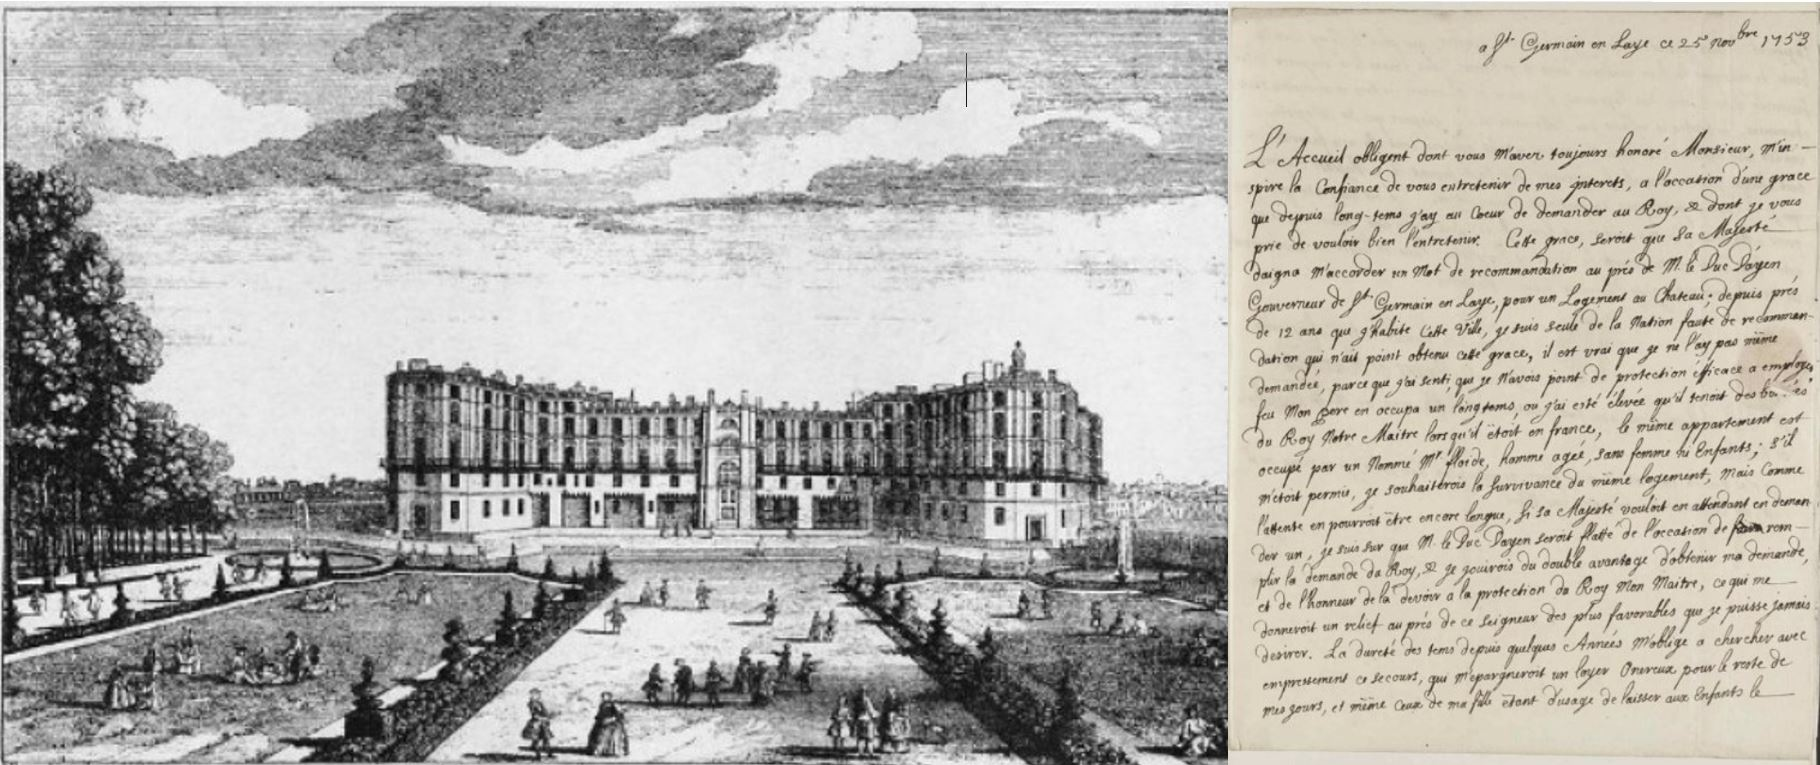 Jacques Rigaud, Vue du Vieux Chateau de St Germain en Laye, engraving, 1725, and letter from Marie Ramsay to James Edgar